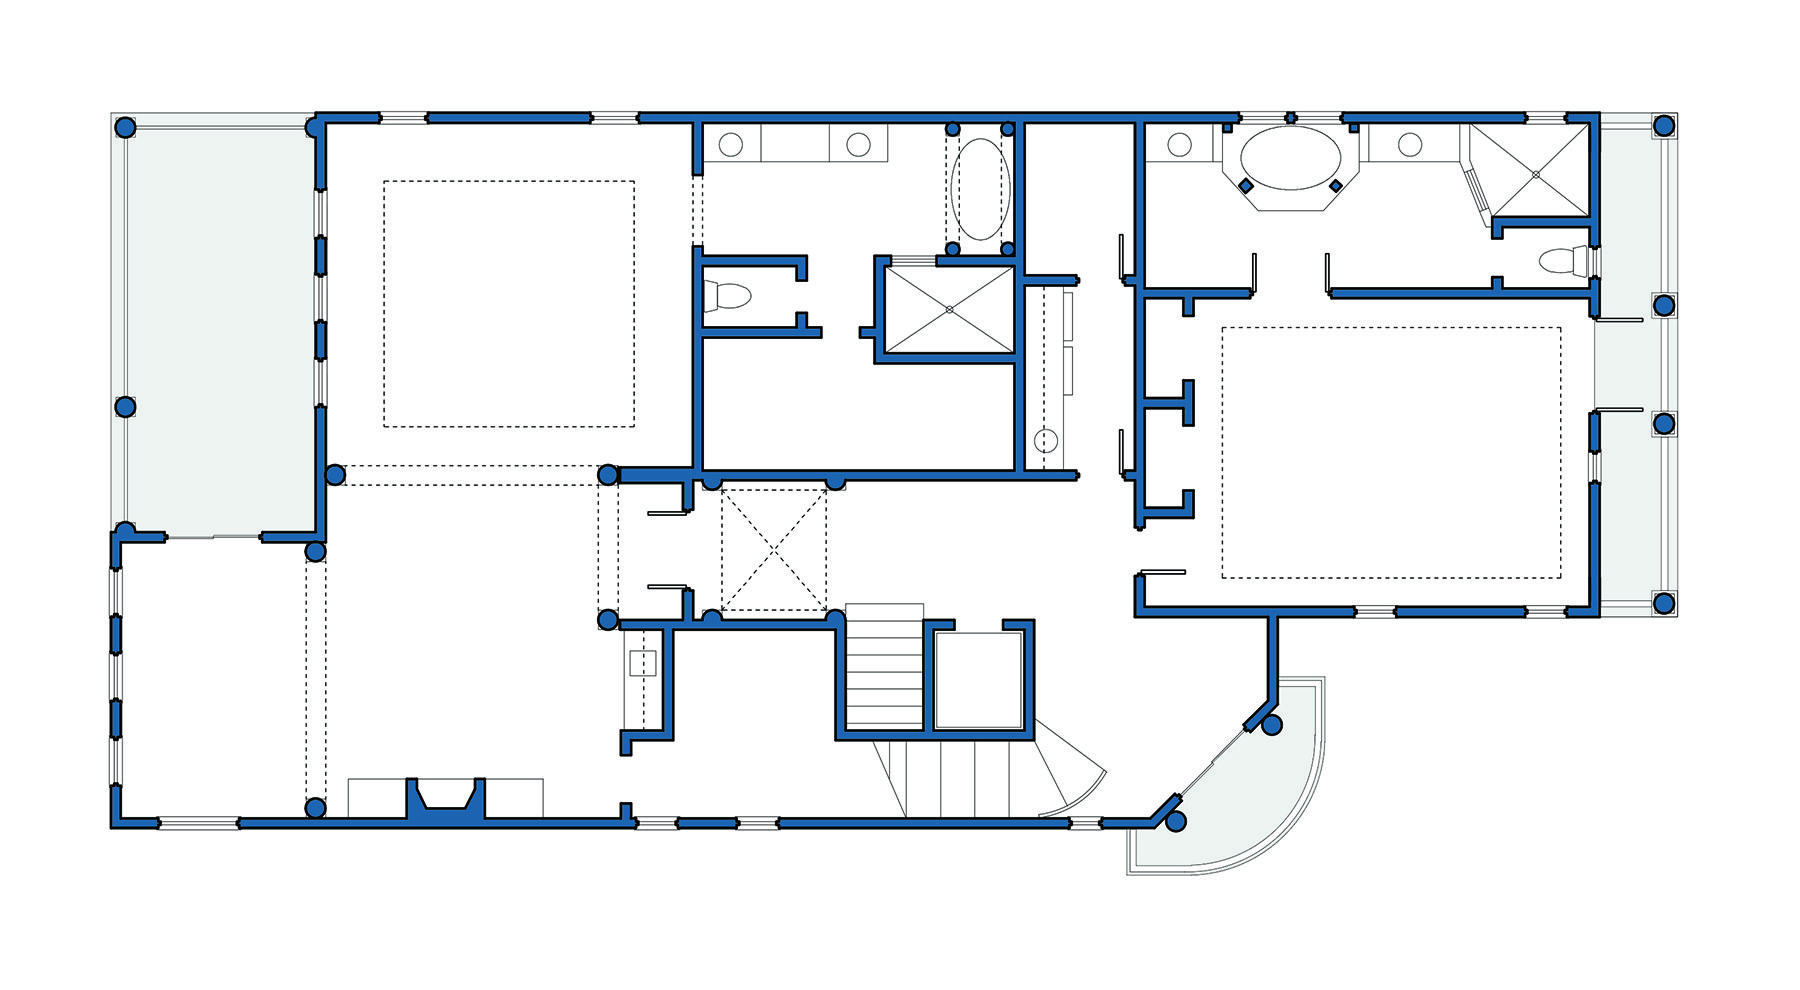 Clear Basic Floor Plan Easy To Read Layout Floor Plans How To Plan Layout